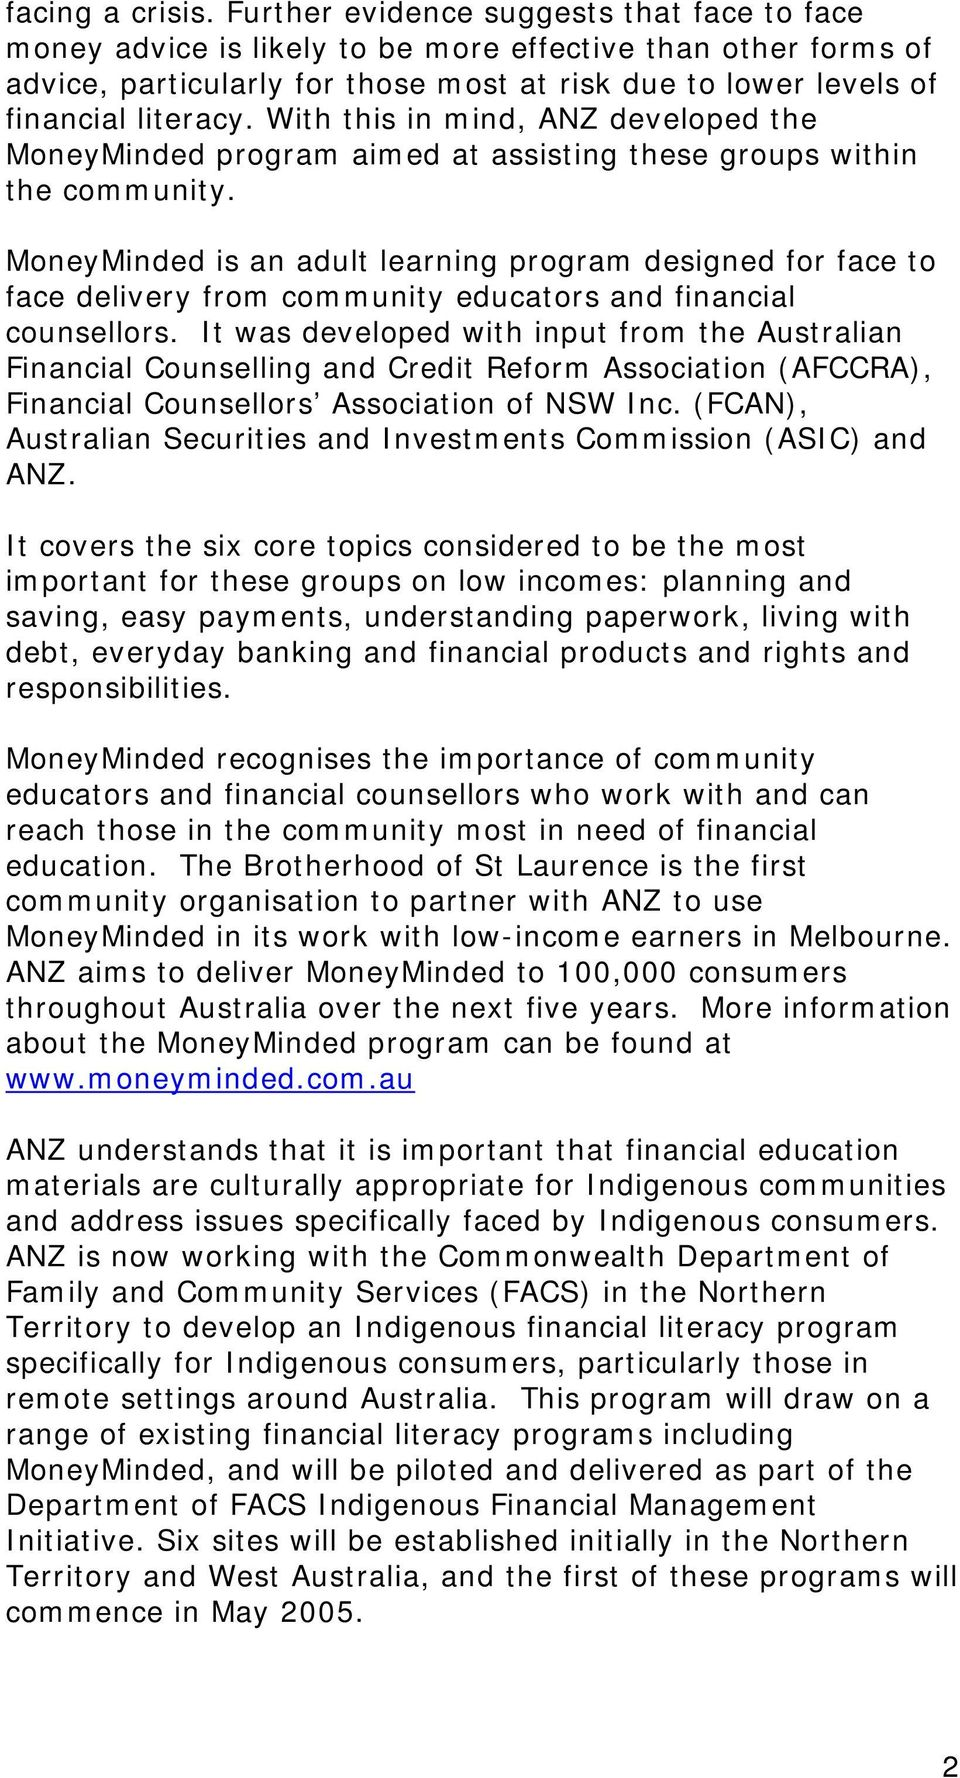 With this in mind, ANZ developed the MoneyMinded program aimed at assisting these groups within the community.